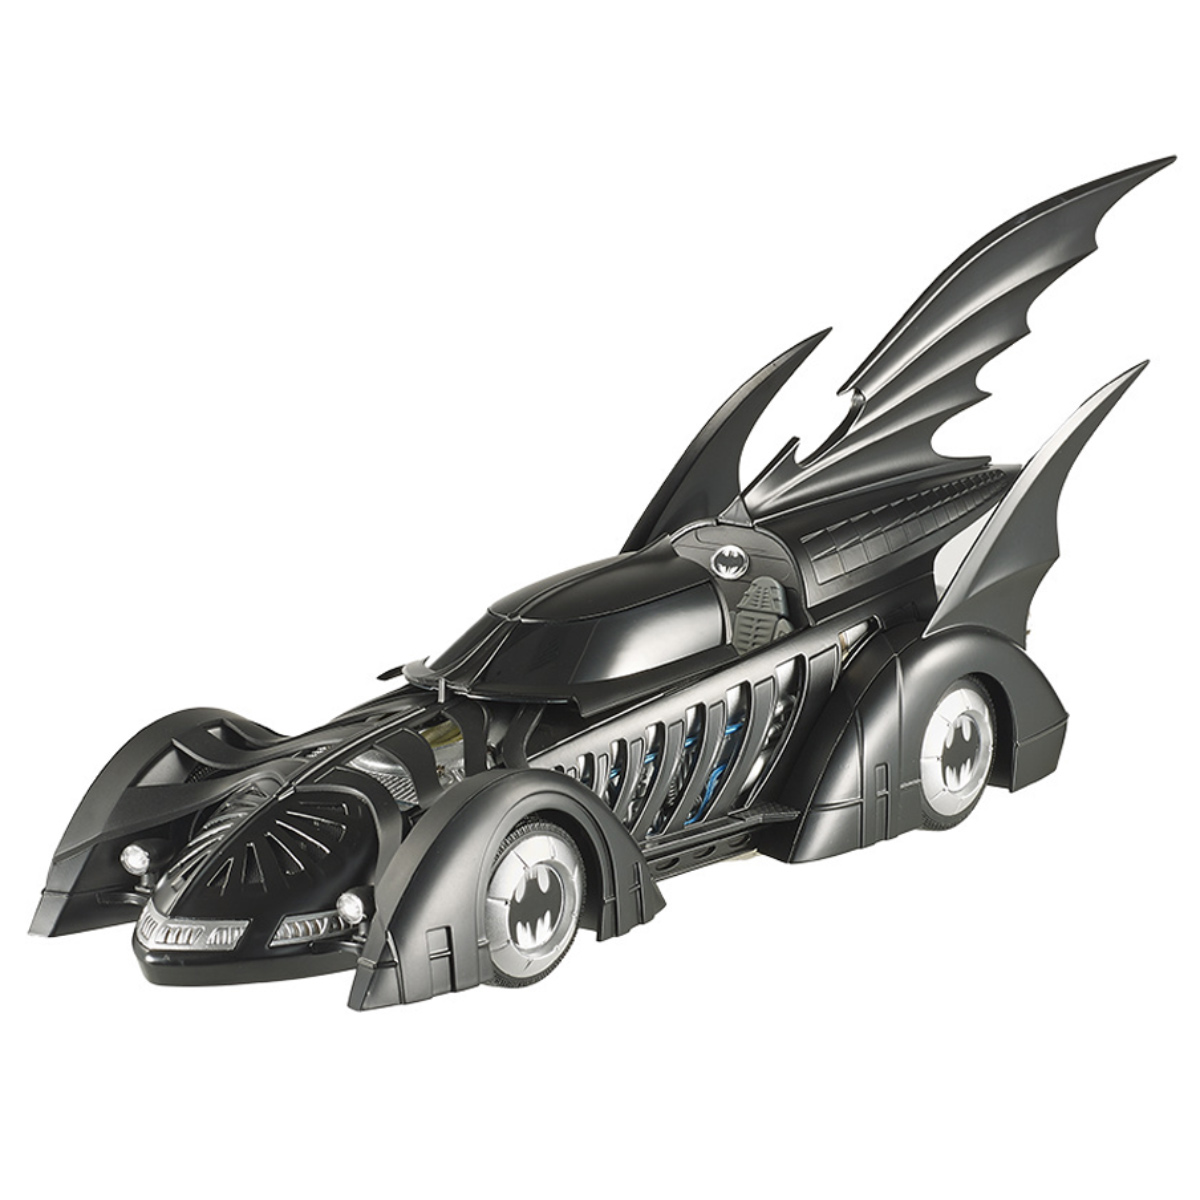 Miniatura Batman Forever Batmóvel Hot Wheels 1:18